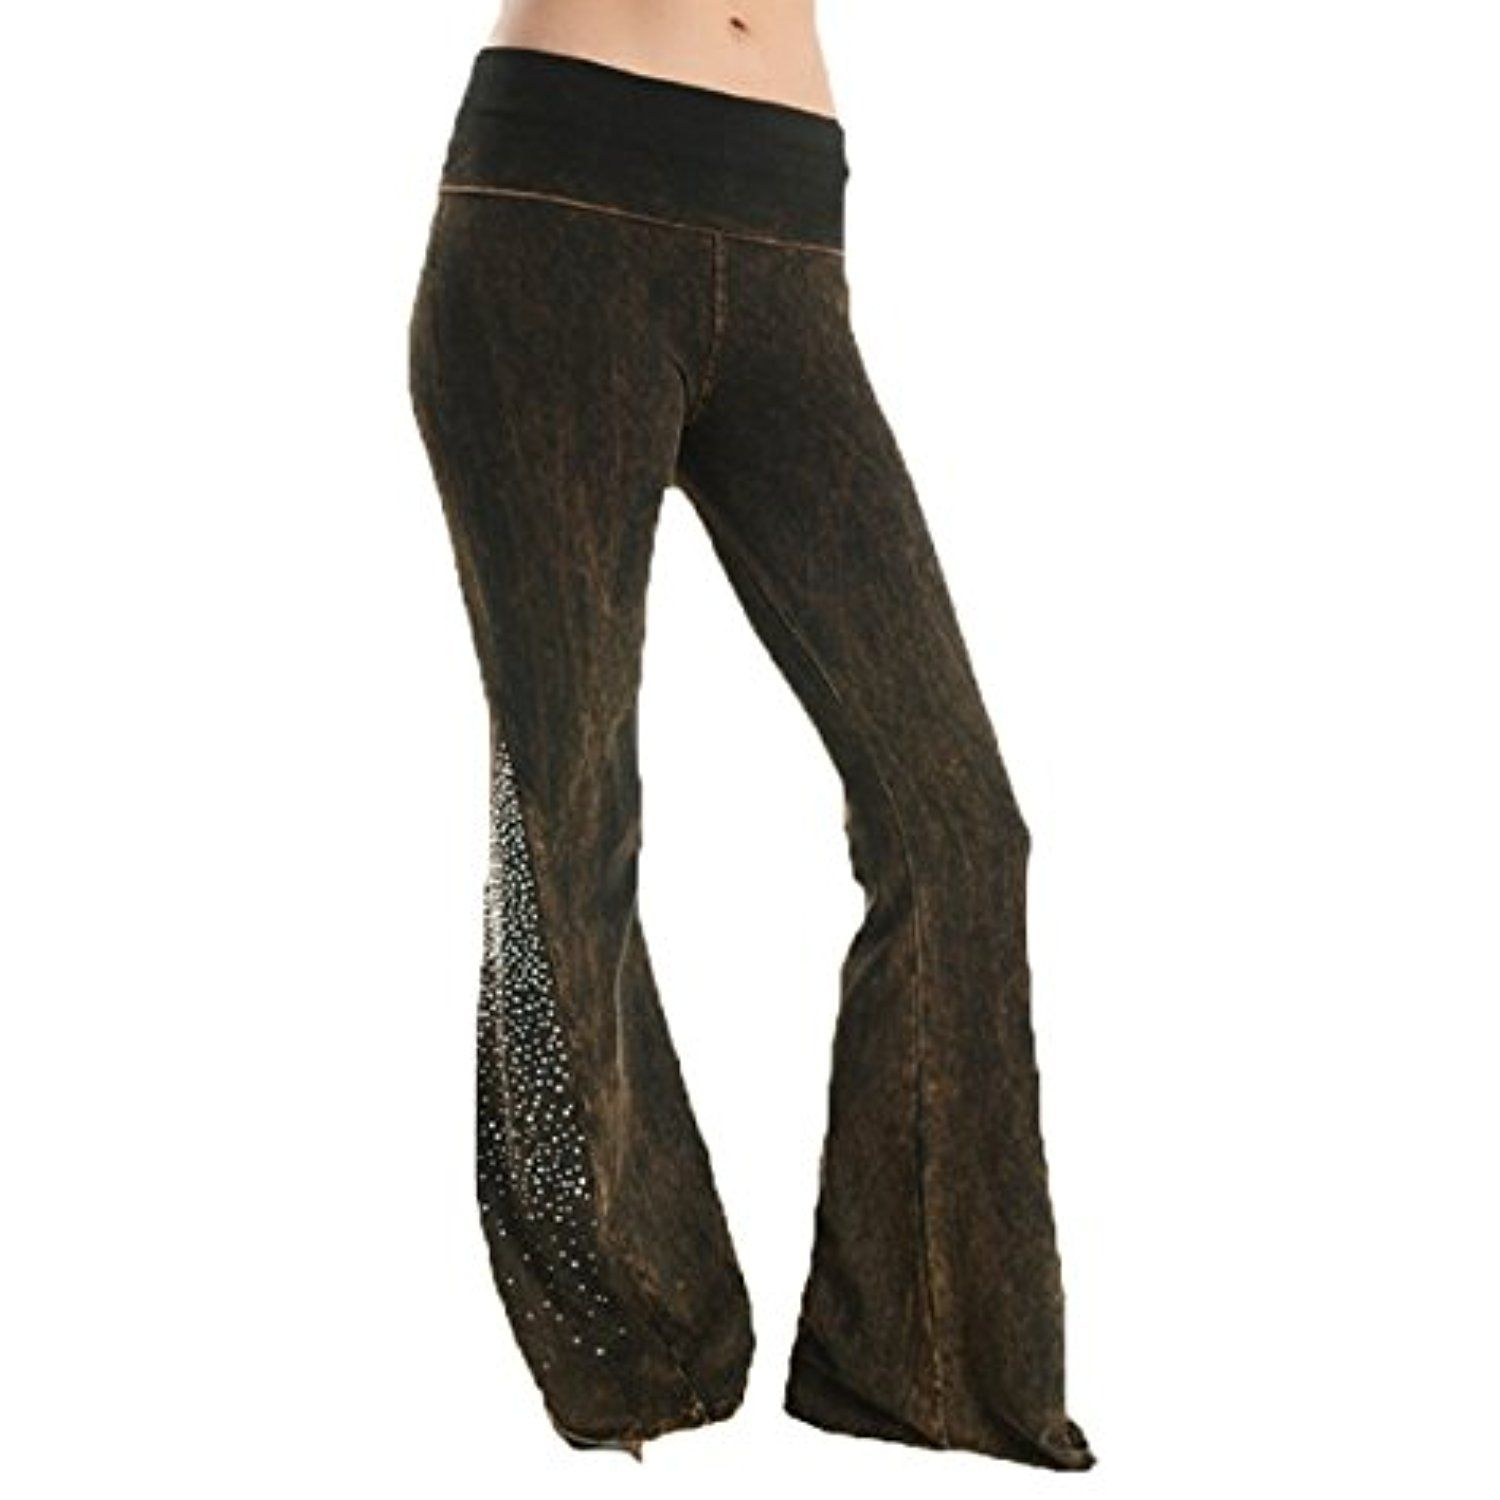 b945b14e02029 T-Party Mineral Wash Rhinestone Fold Over Waist Yoga Pants New * Click  image to review more details. (This is an affiliate link) #Pants